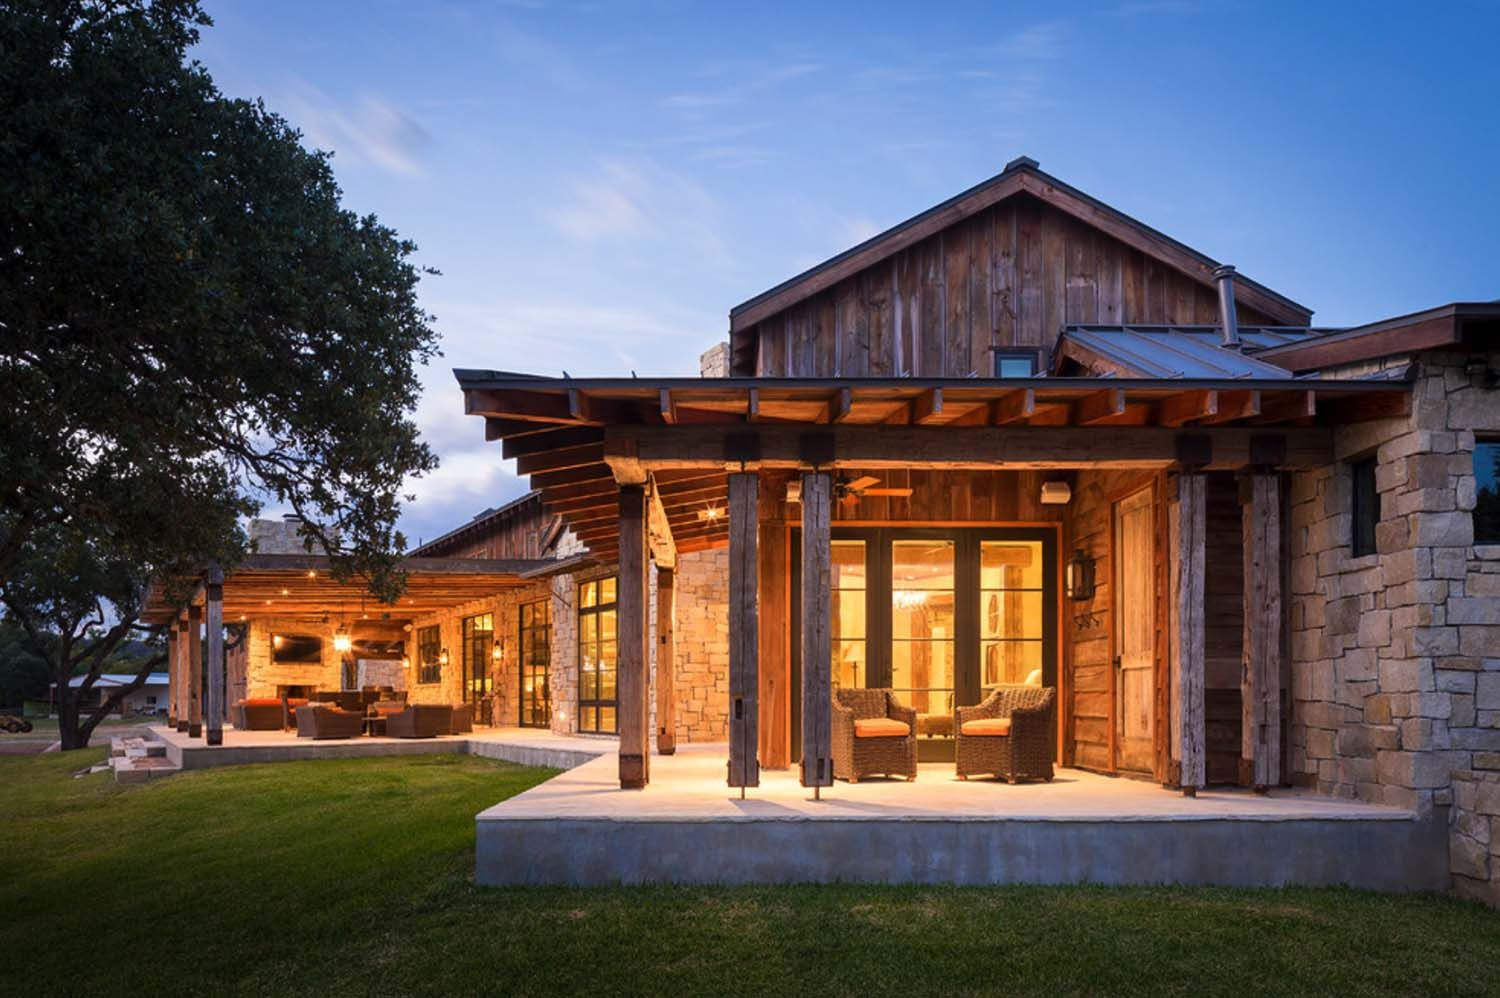 Modern Rustic Barn Style Retreat In Texas Hill Country: modern rustic farmhouse plans